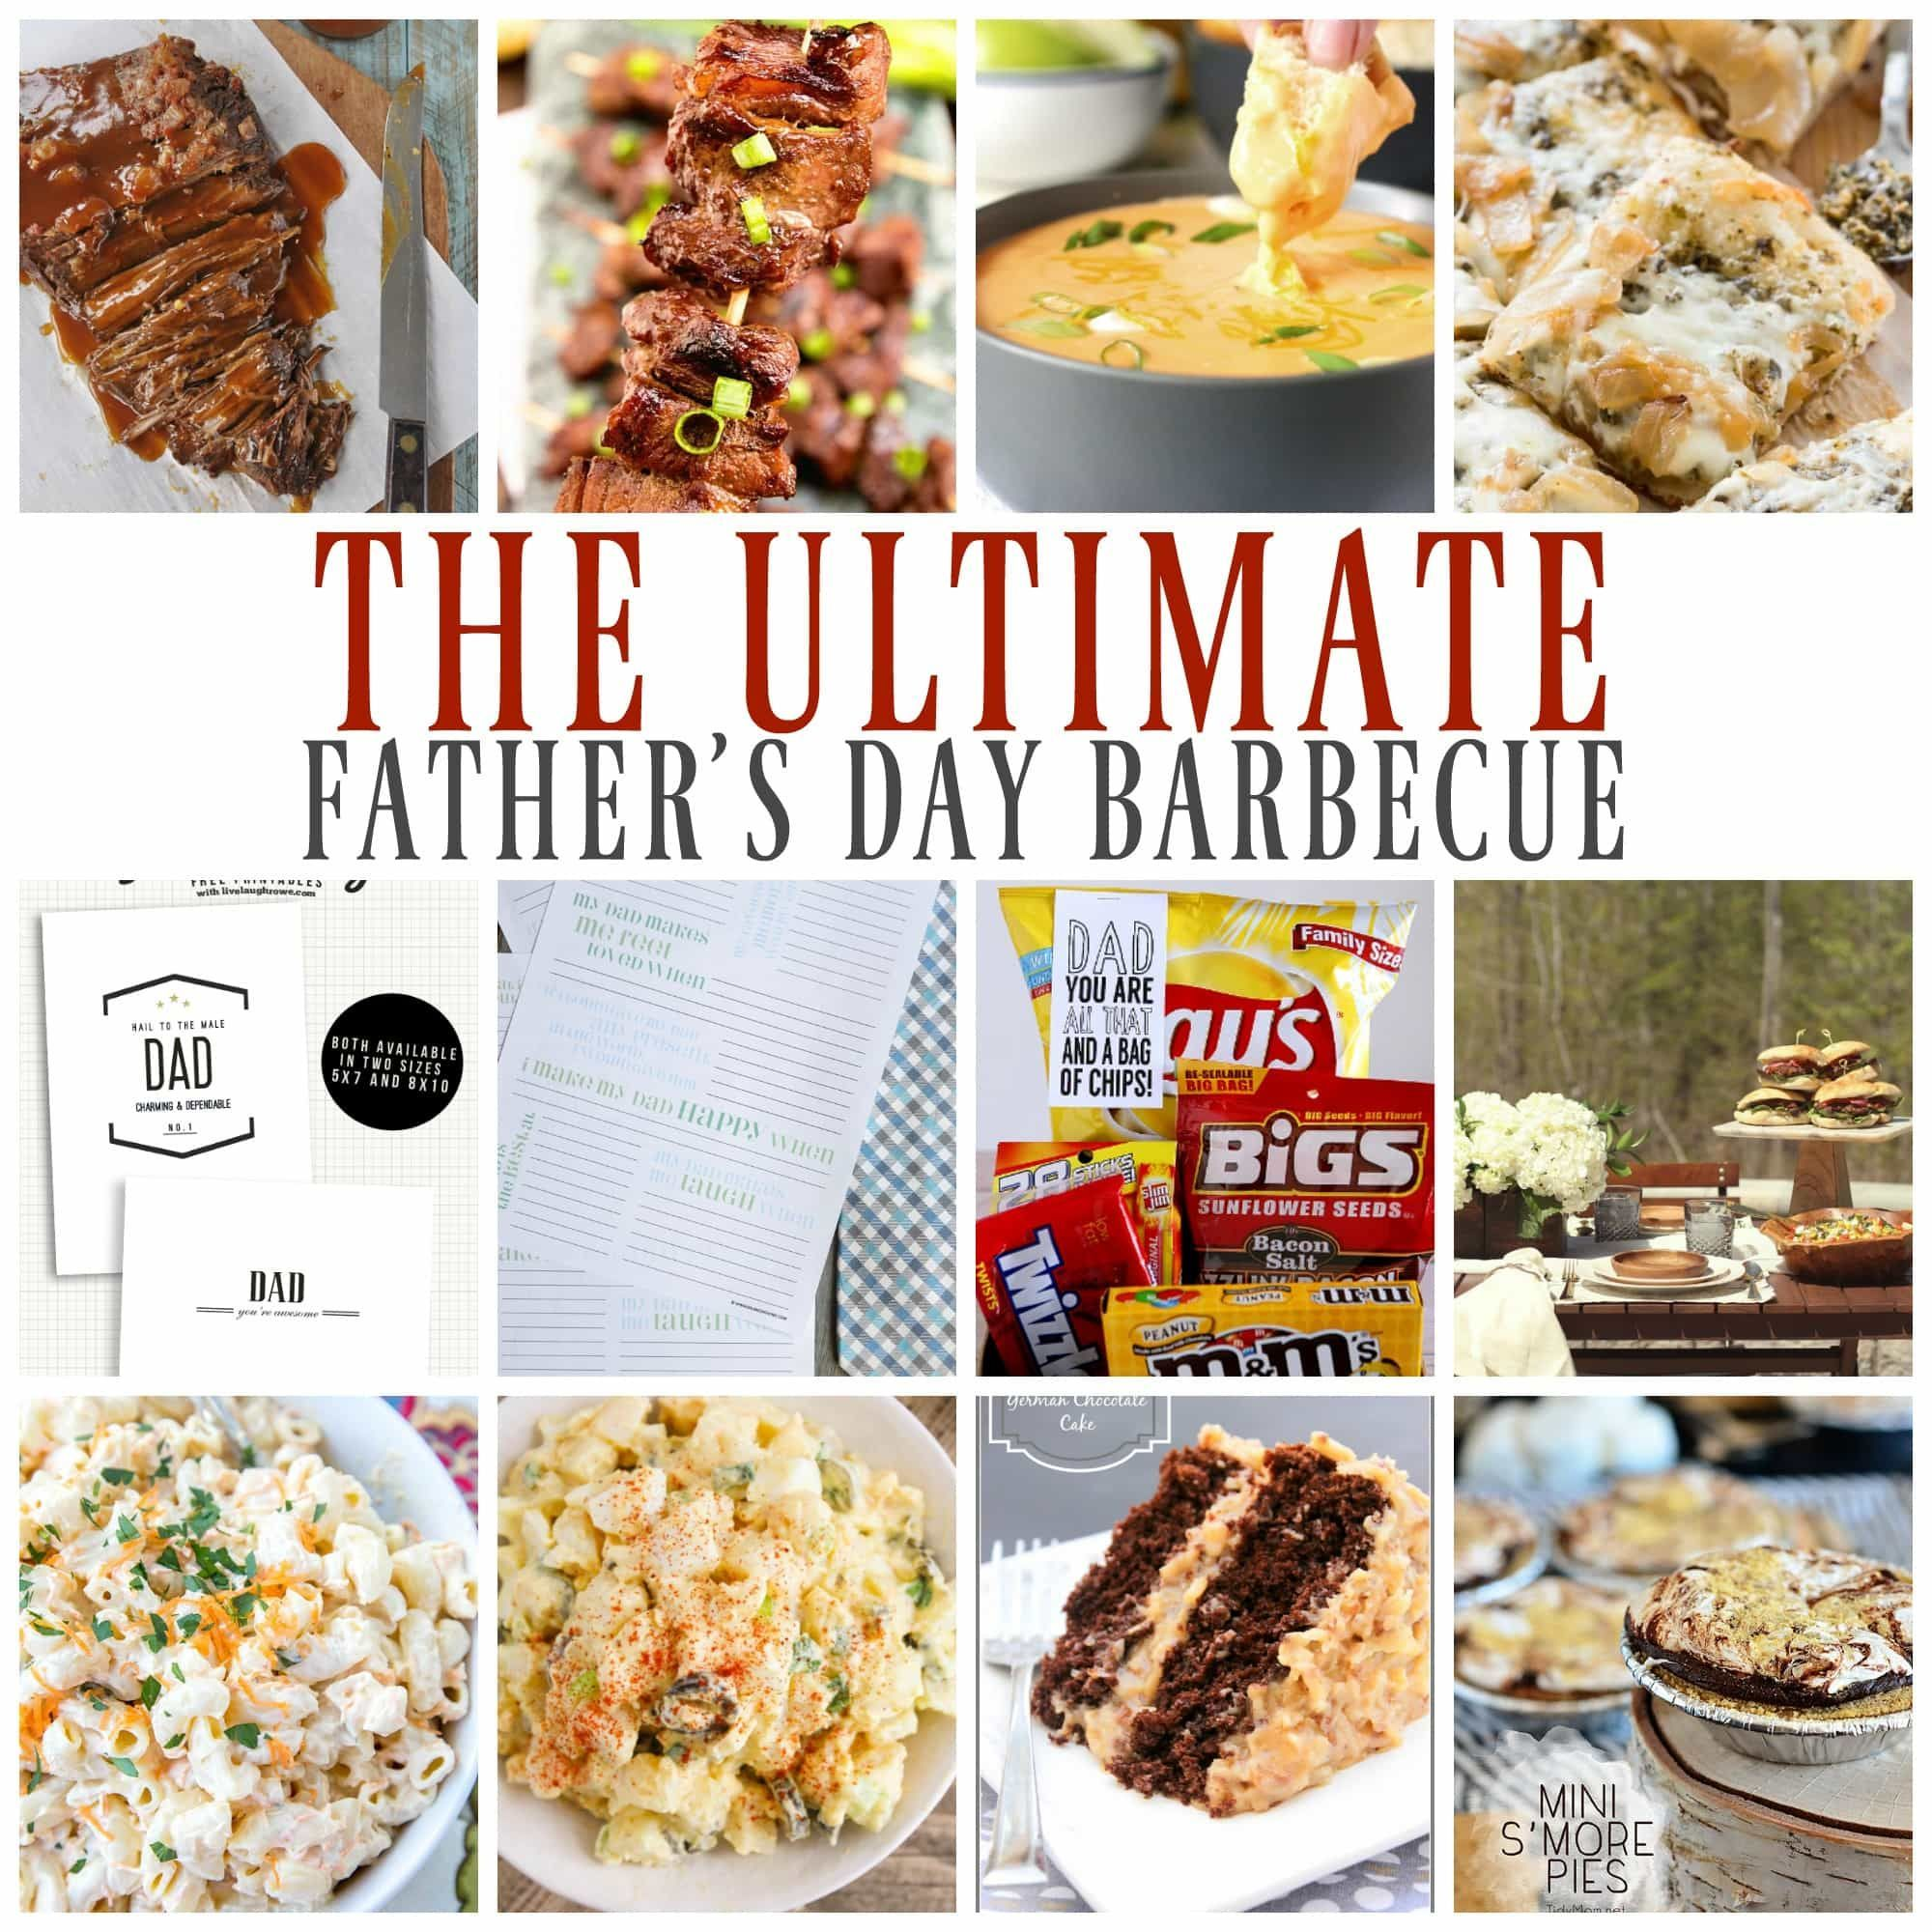 The Ultimate Father S Day Barbecue A Dash Of Sanity Fathers Day Dinner Menu The Ultimate Fath In 2020 Holiday Meal Planning Holiday Recipes Fathers Day Dinner Ideas